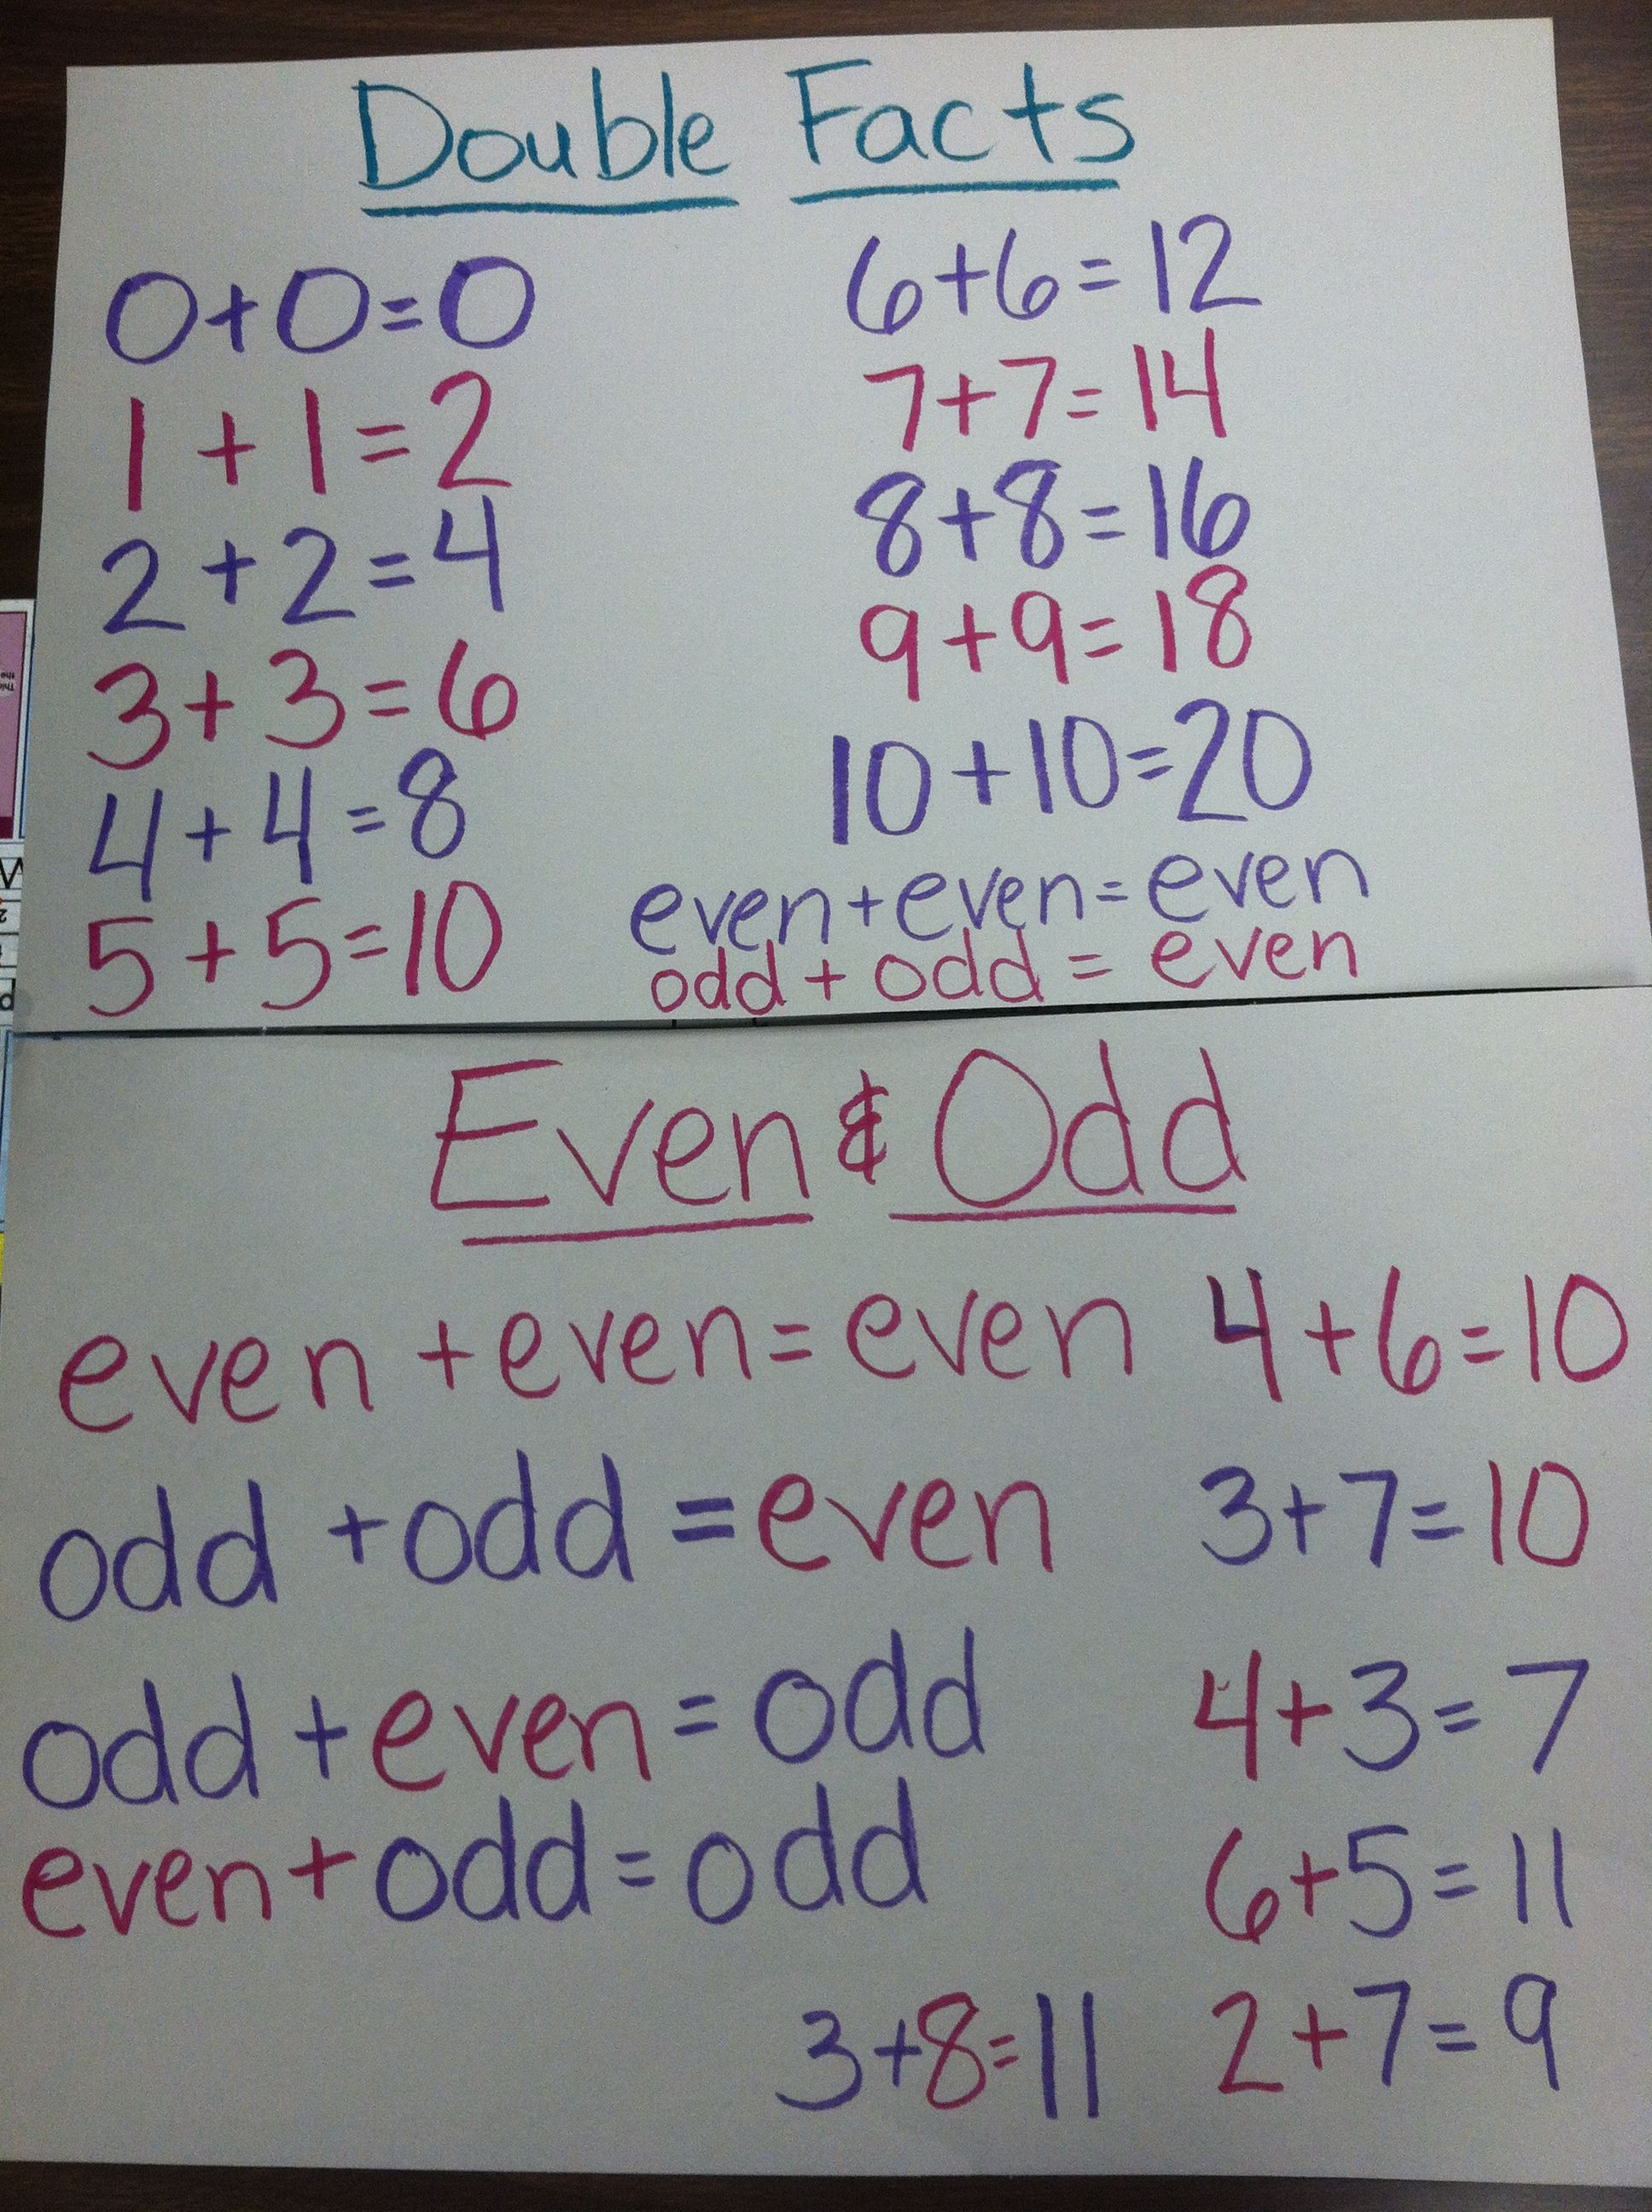 Double Facts With Even And Odd Connections 2nd Grade Math Math Classroom Elementary Math Adding numbers using doubles